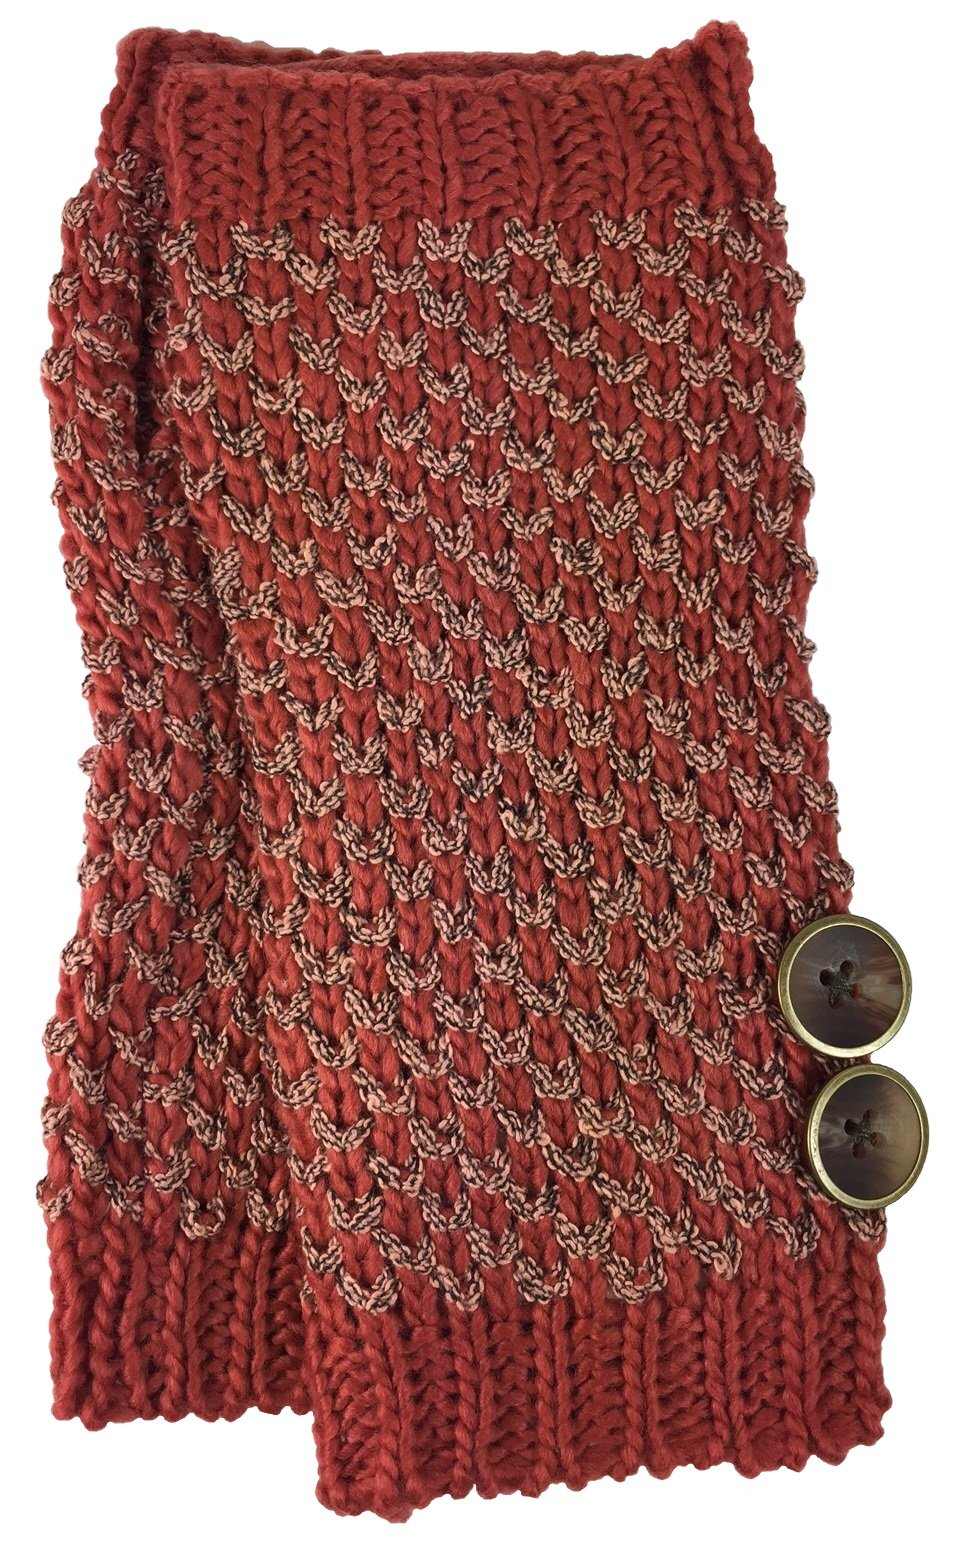 Simply Noelle Bumble Wrist Warmers with Buttons (Pomegranate)